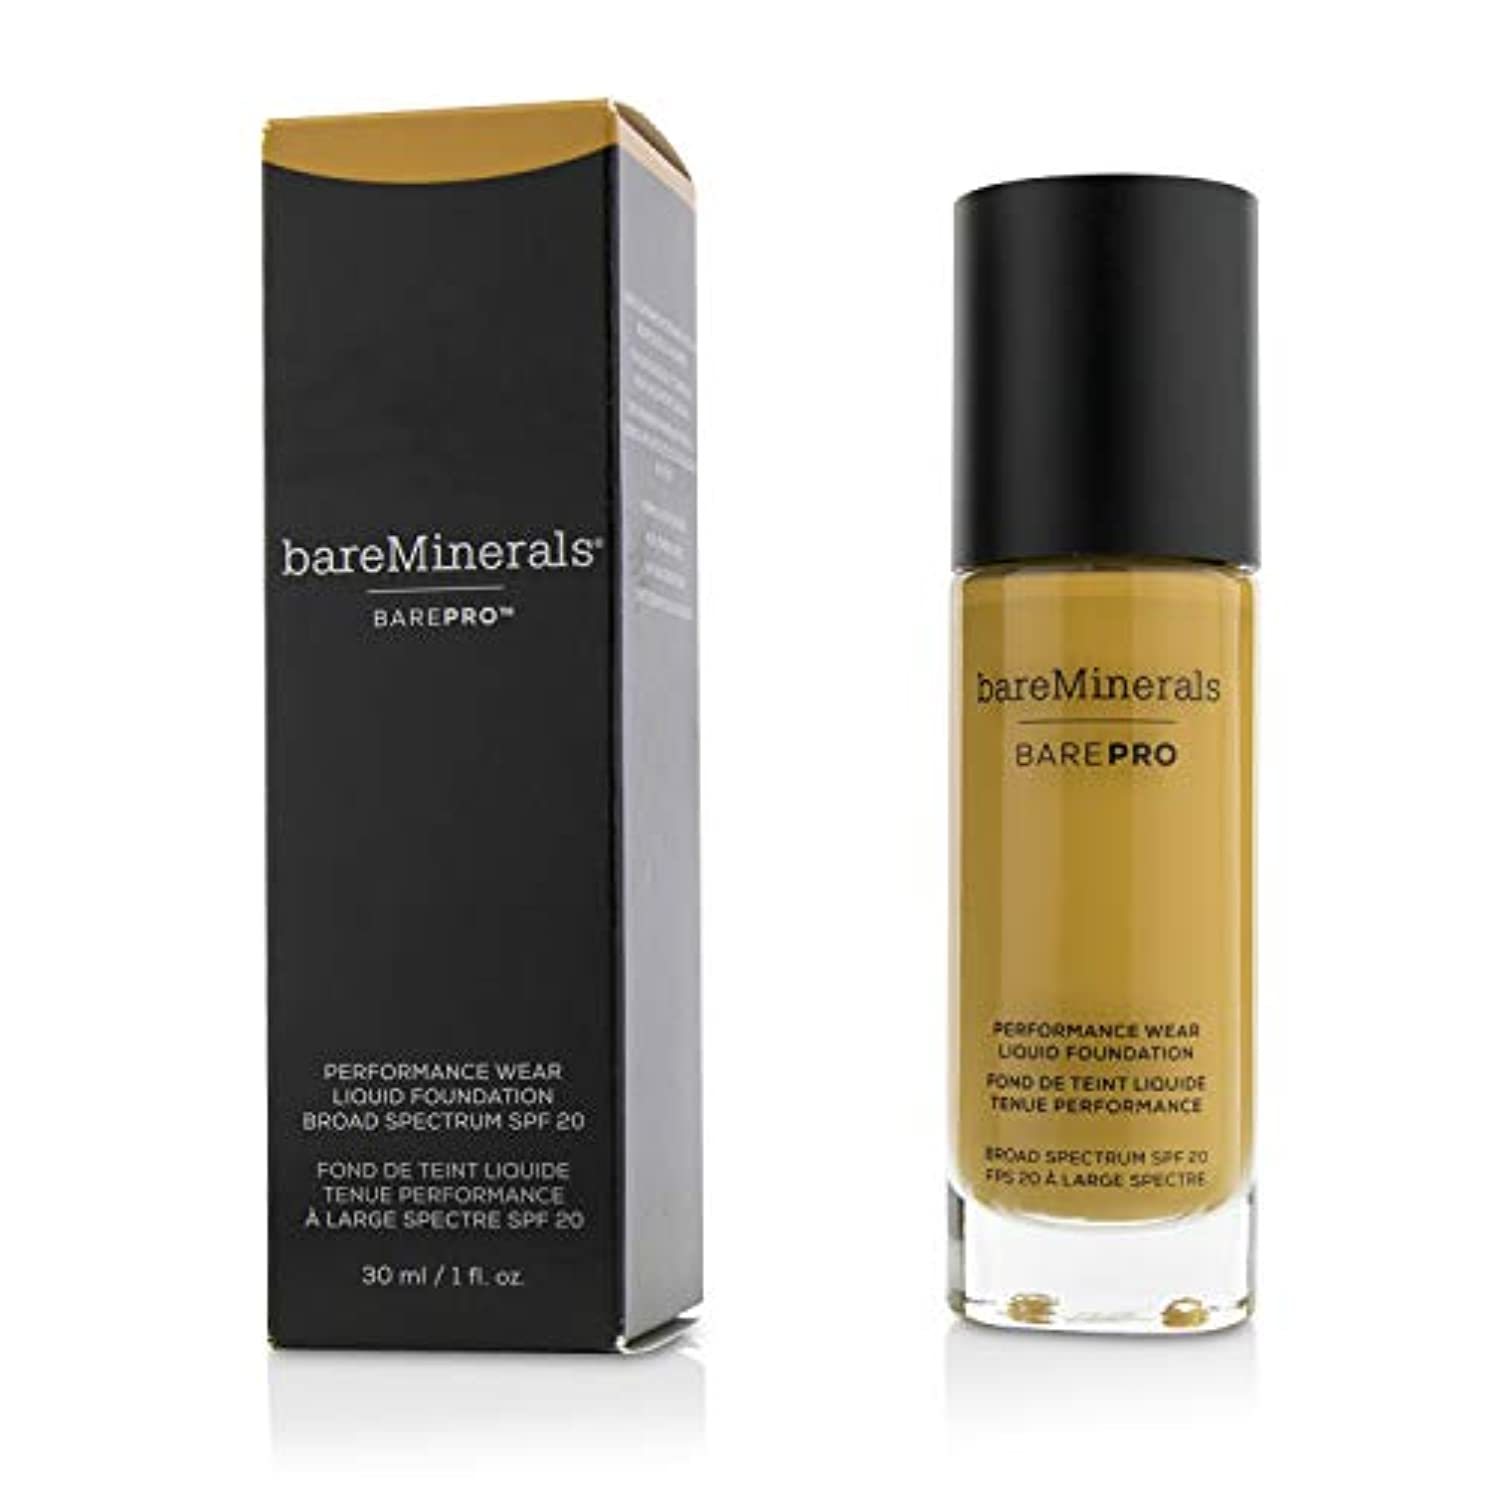 幹ペース職業ベアミネラル BarePro Performance Wear Liquid Foundation SPF20 - # 21 Sable 30ml/1oz並行輸入品